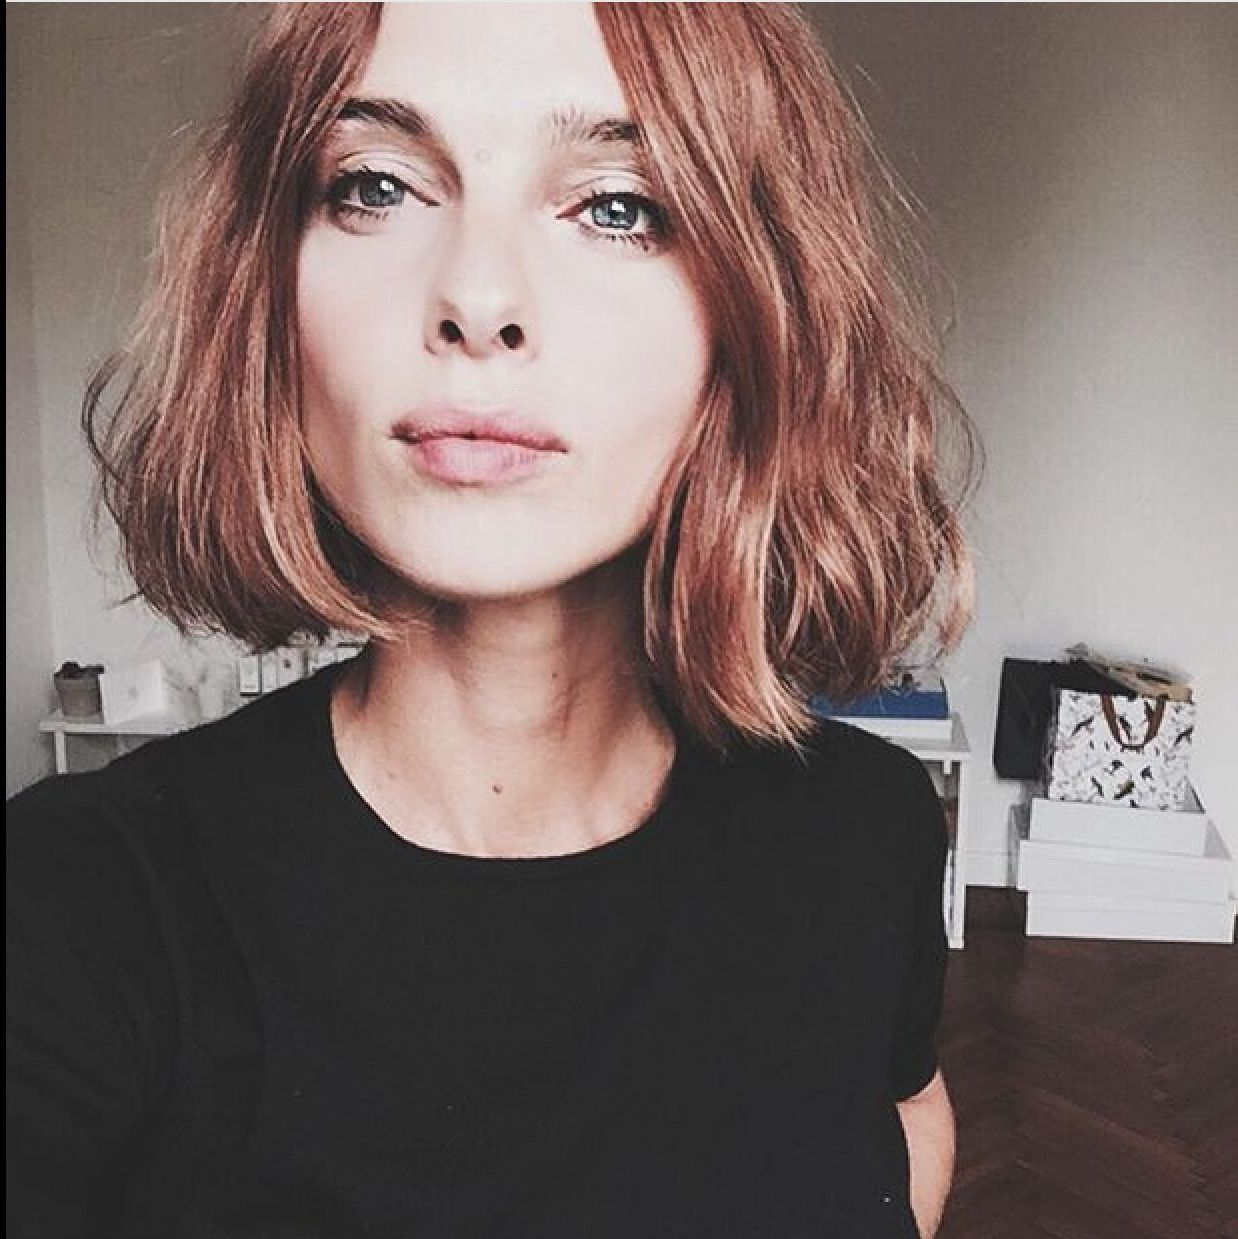 Short blunt bob hairstyle with bangs short hairstyles - Hair Cut Short And Blunt Bob More